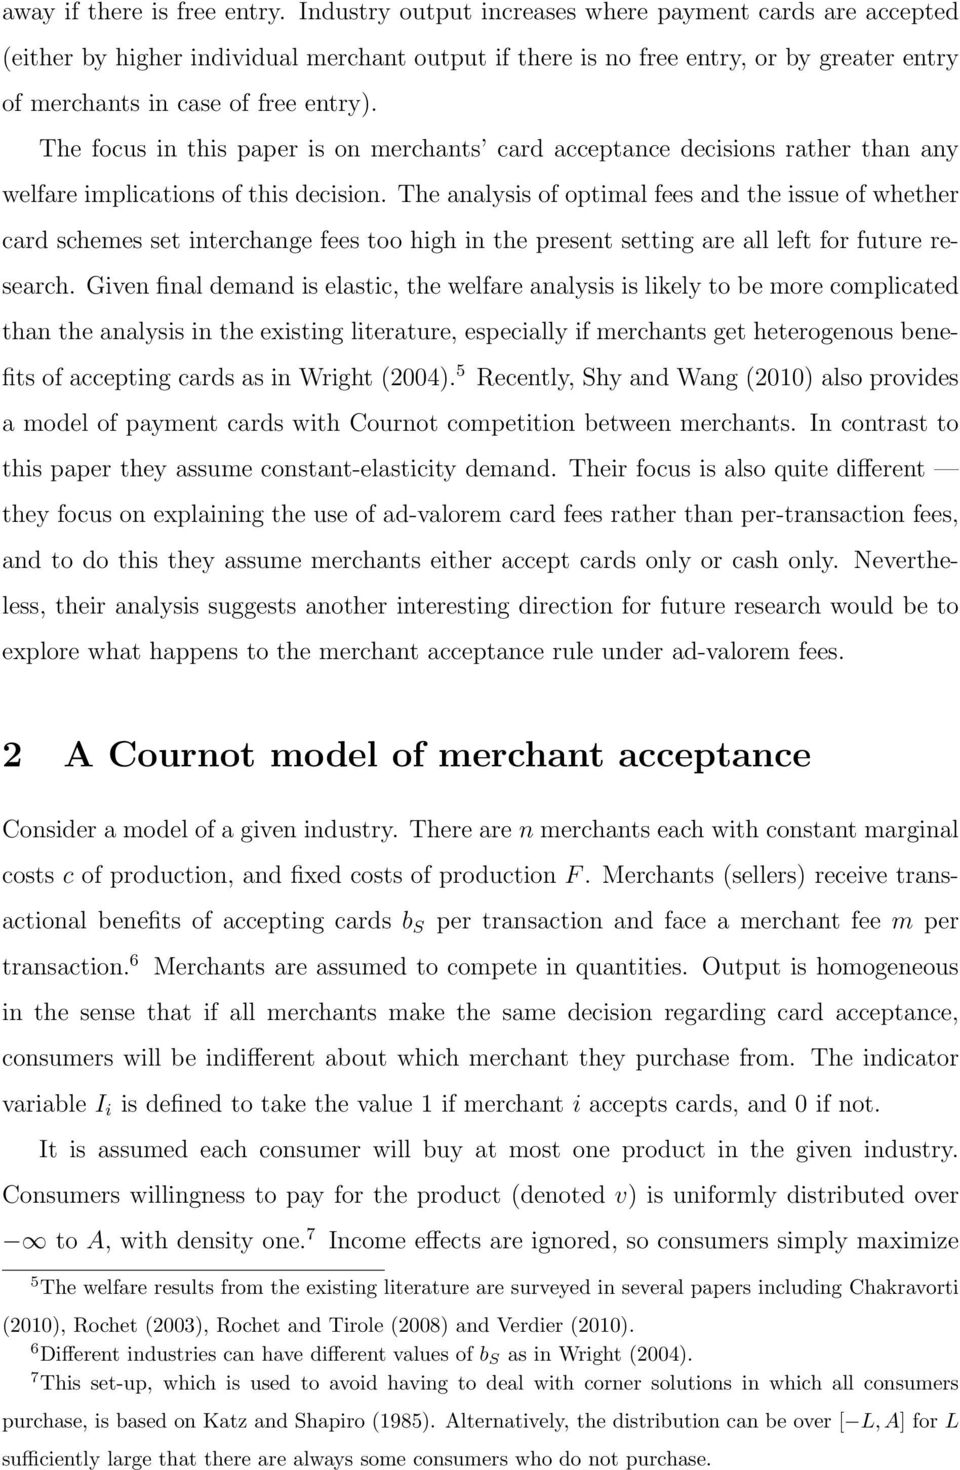 The focus in this paper is on merchants card acceptance decisions rather than any welfare implications of this decision.